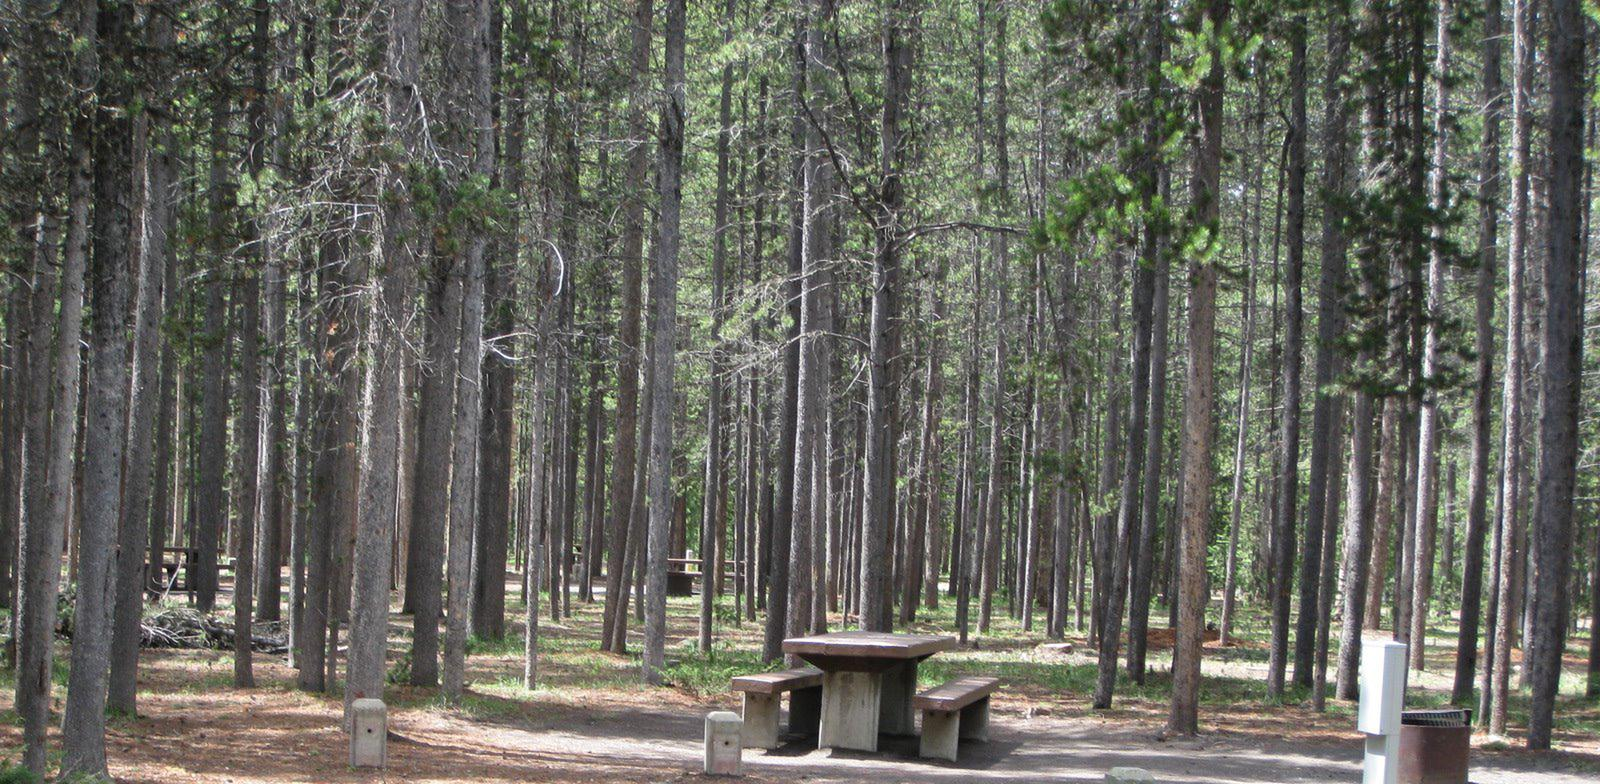 Site C17, surrounded by pine trees, picnic table & fire ringSite C17